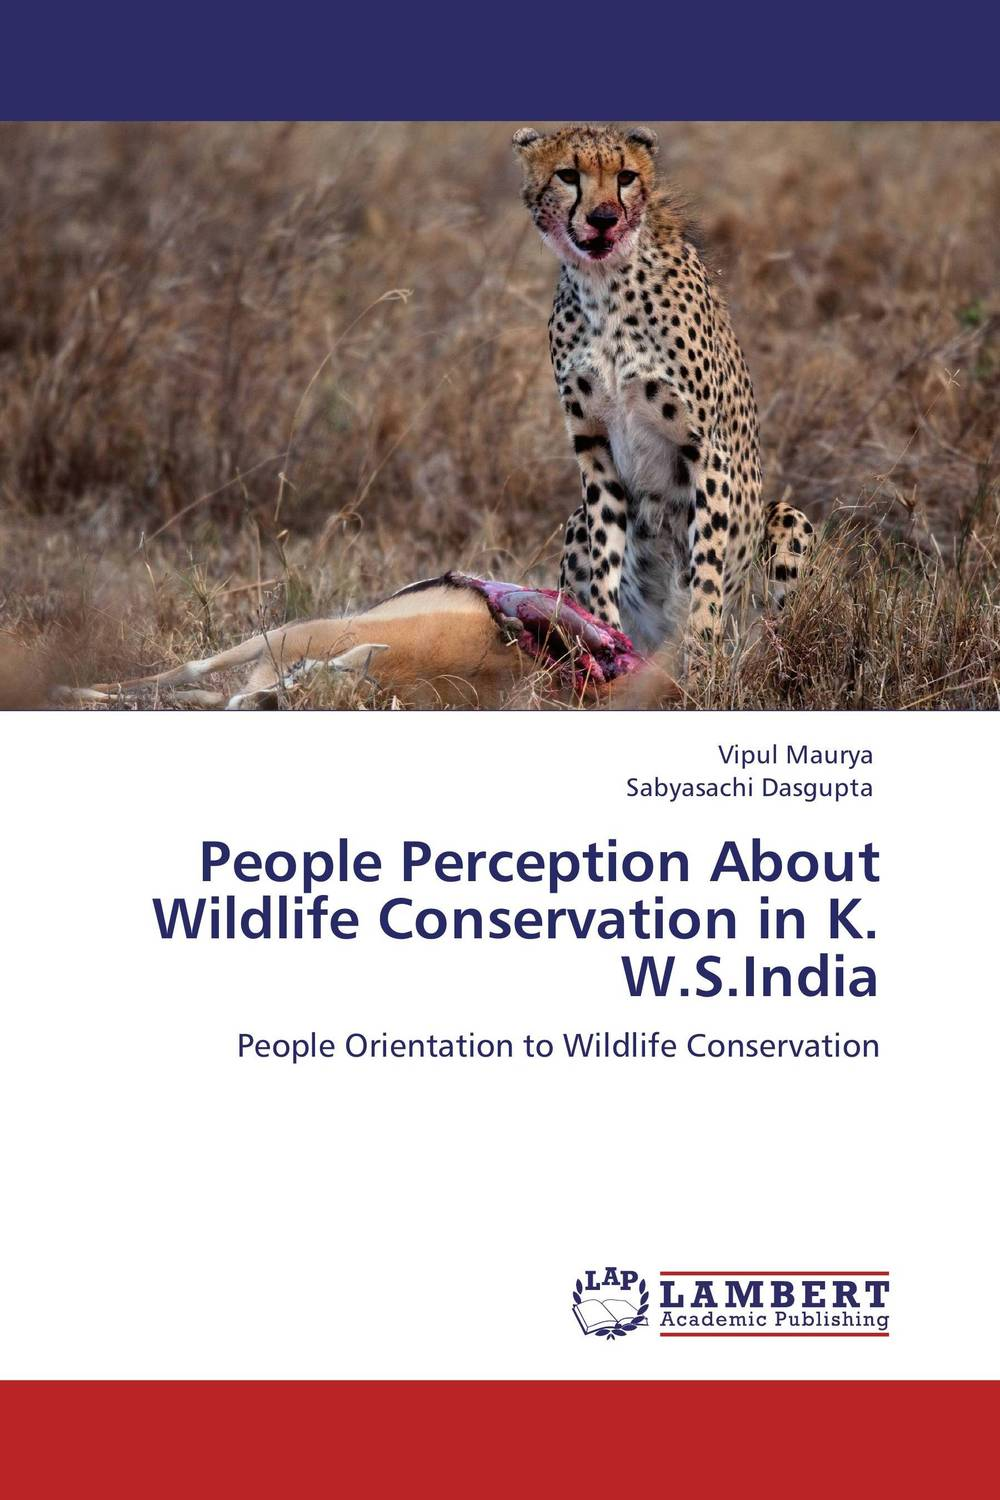 People Perception About Wildlife Conservation in K. W.S.India conflicts in forest resources usage and management